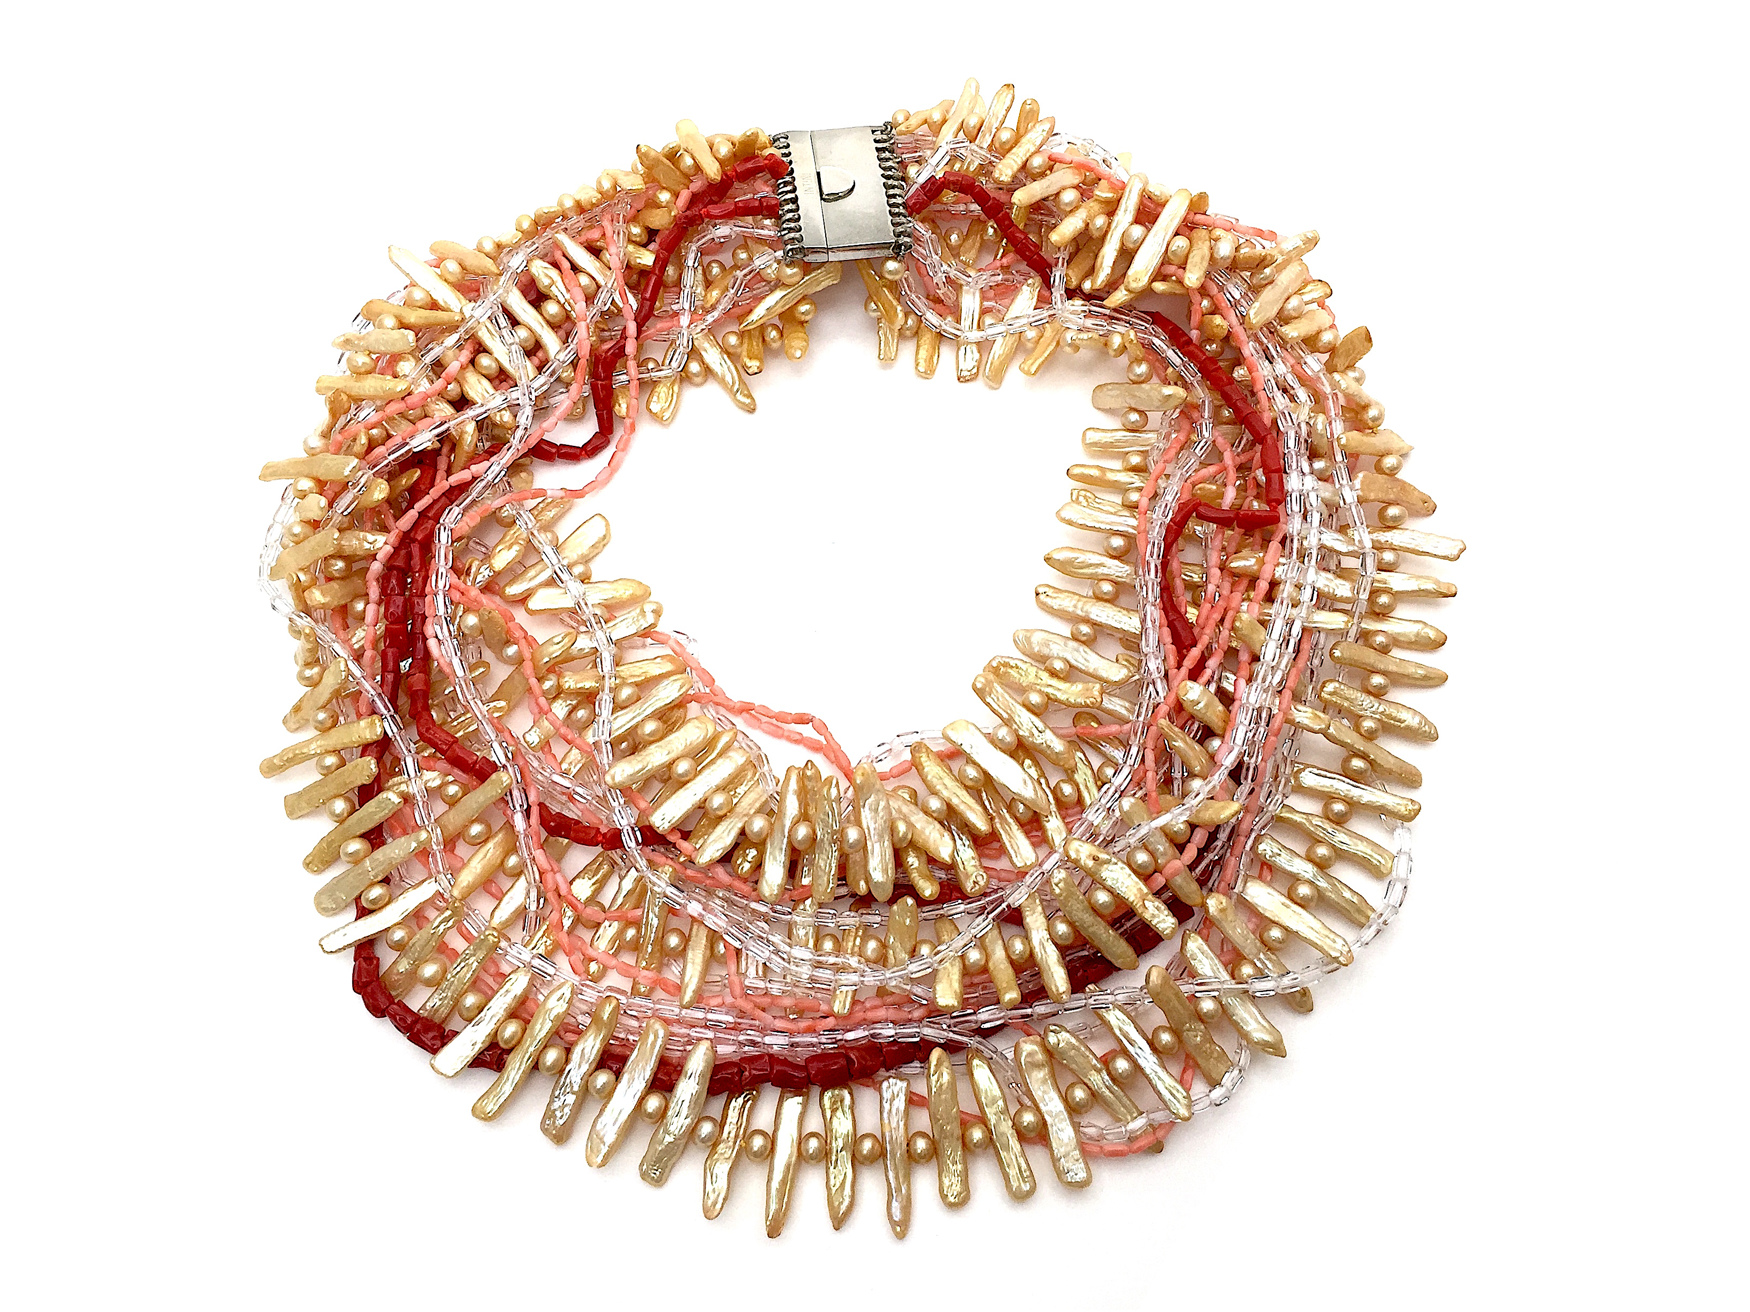 Sensi joyas jewellery Granada silver engagementNECKLACE NATURAL CORALLIUM,PEARLS  CULTERED AND CORAL